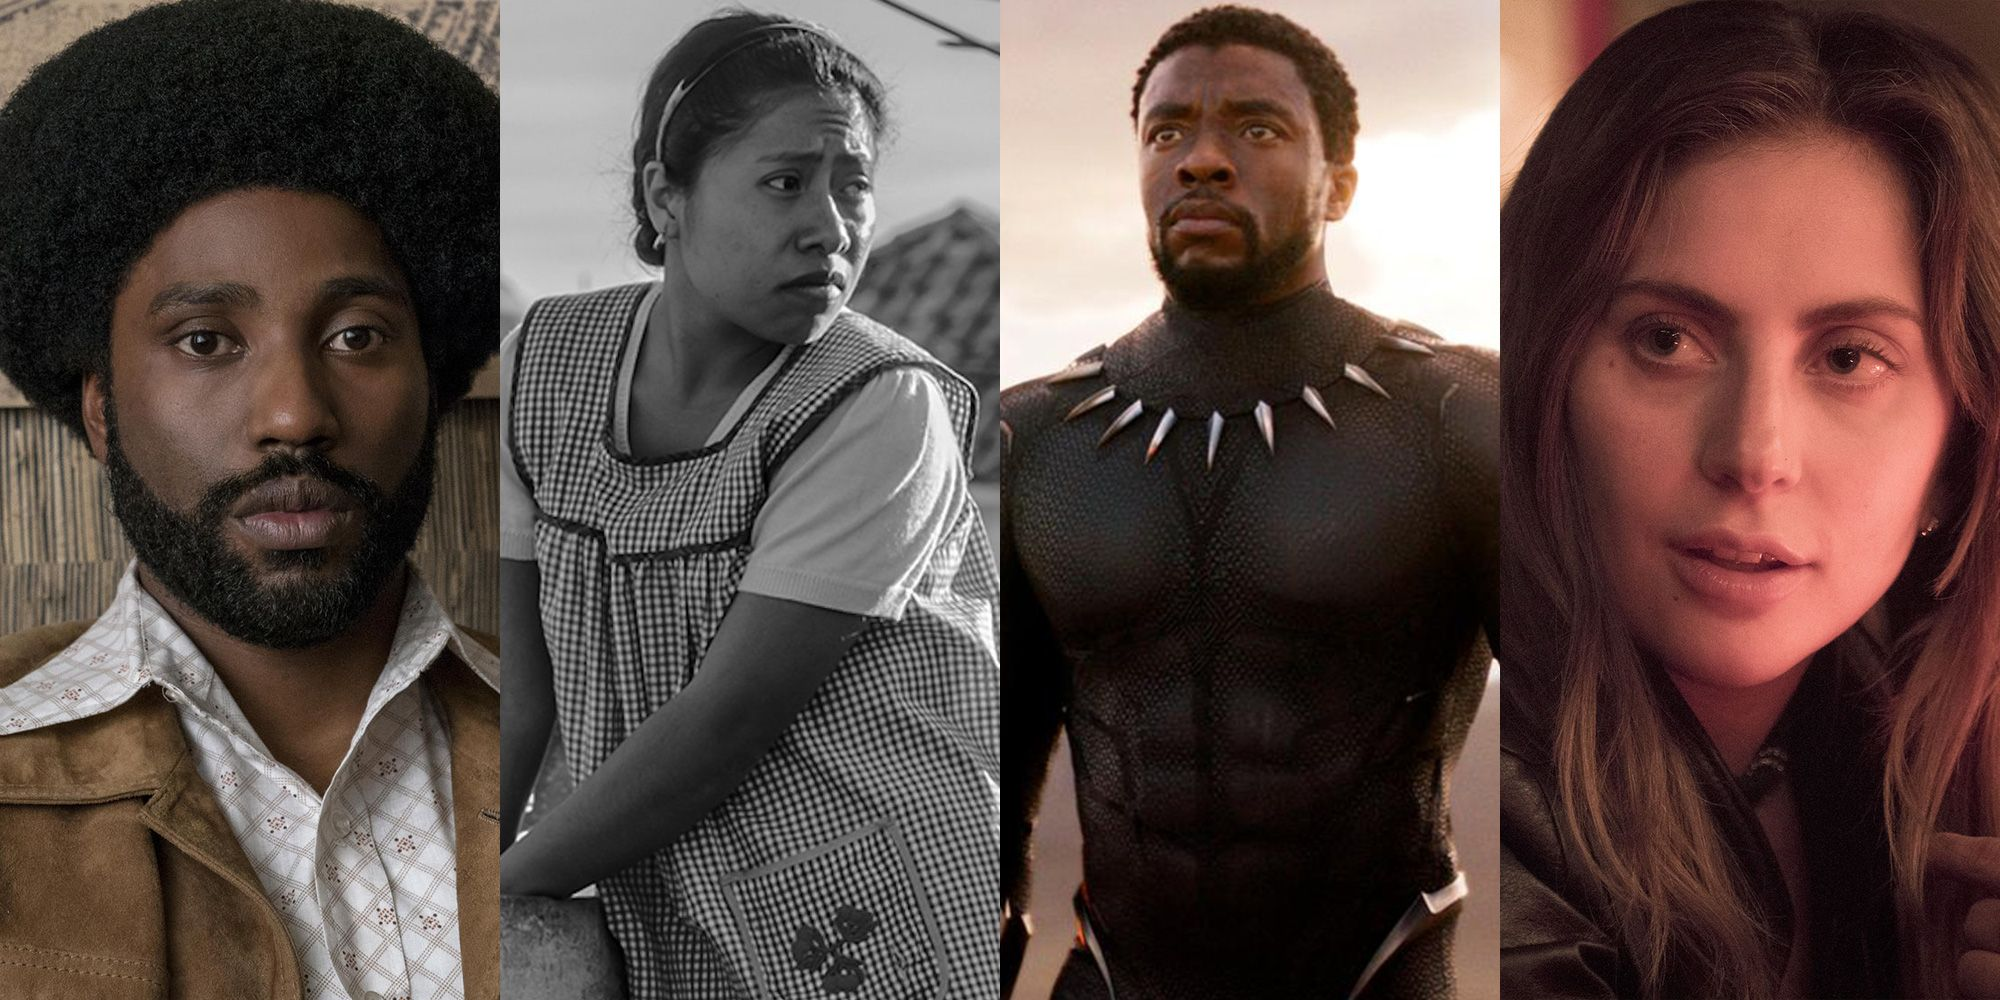 How to Watch Every Oscar 2019 Nominated Movie from Black Panther to Roma